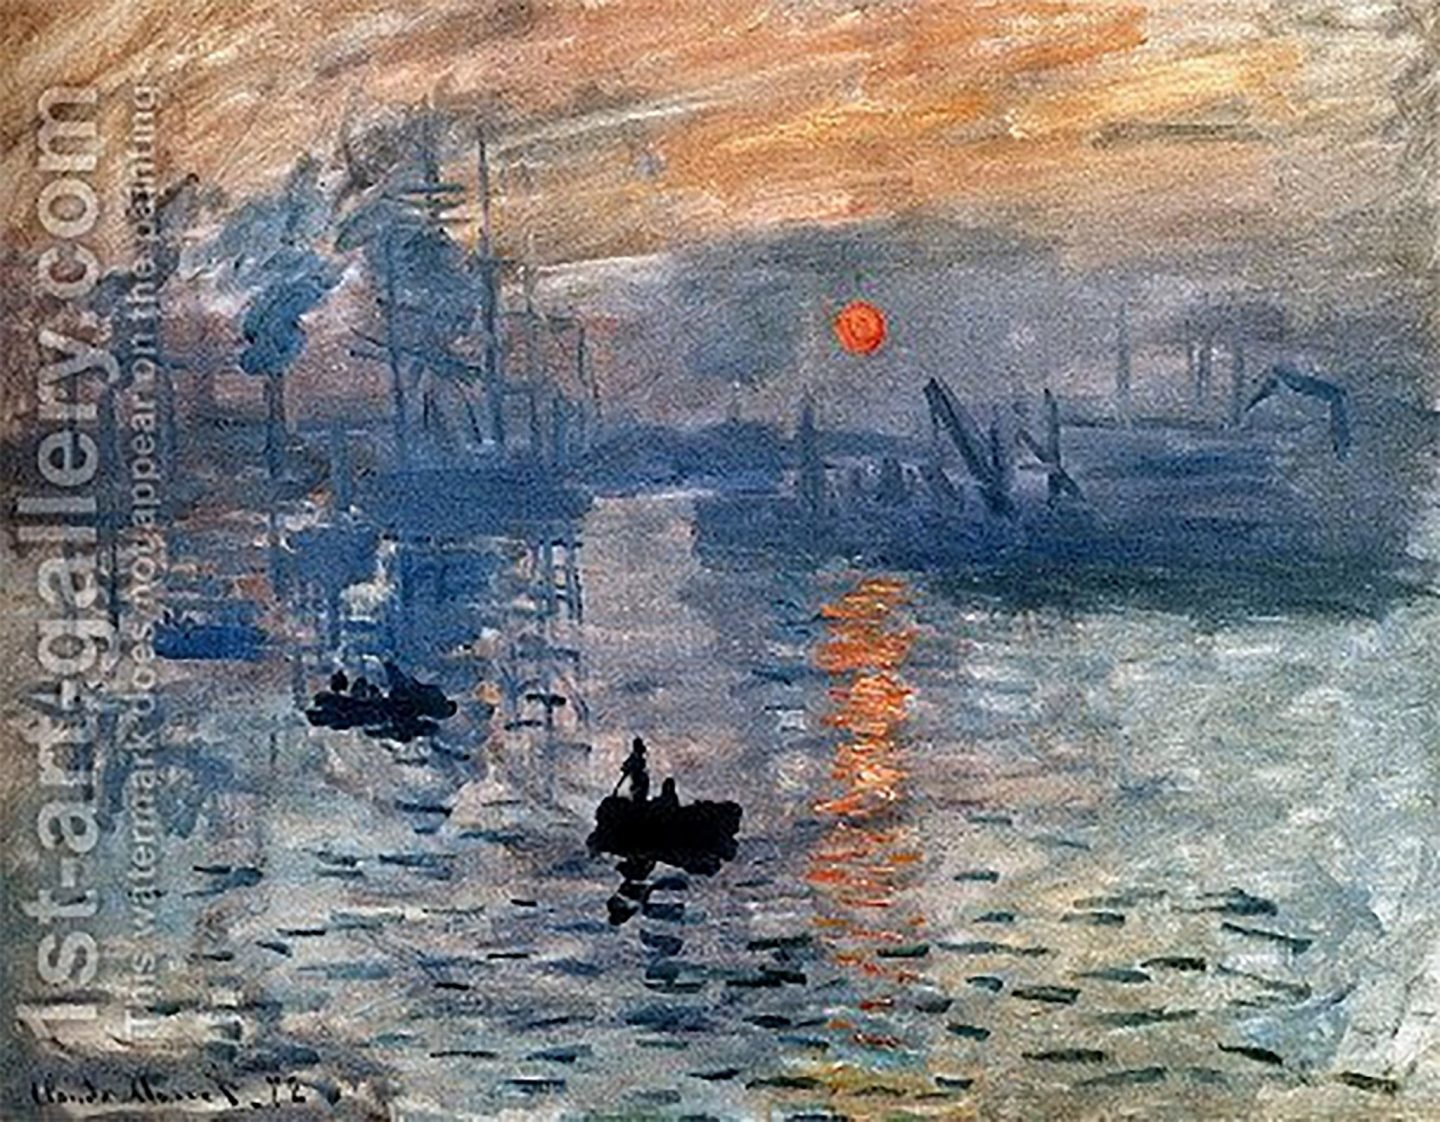 5 FAMOUS MARITIME PAINTERS AND THEIR MASTERPIECES